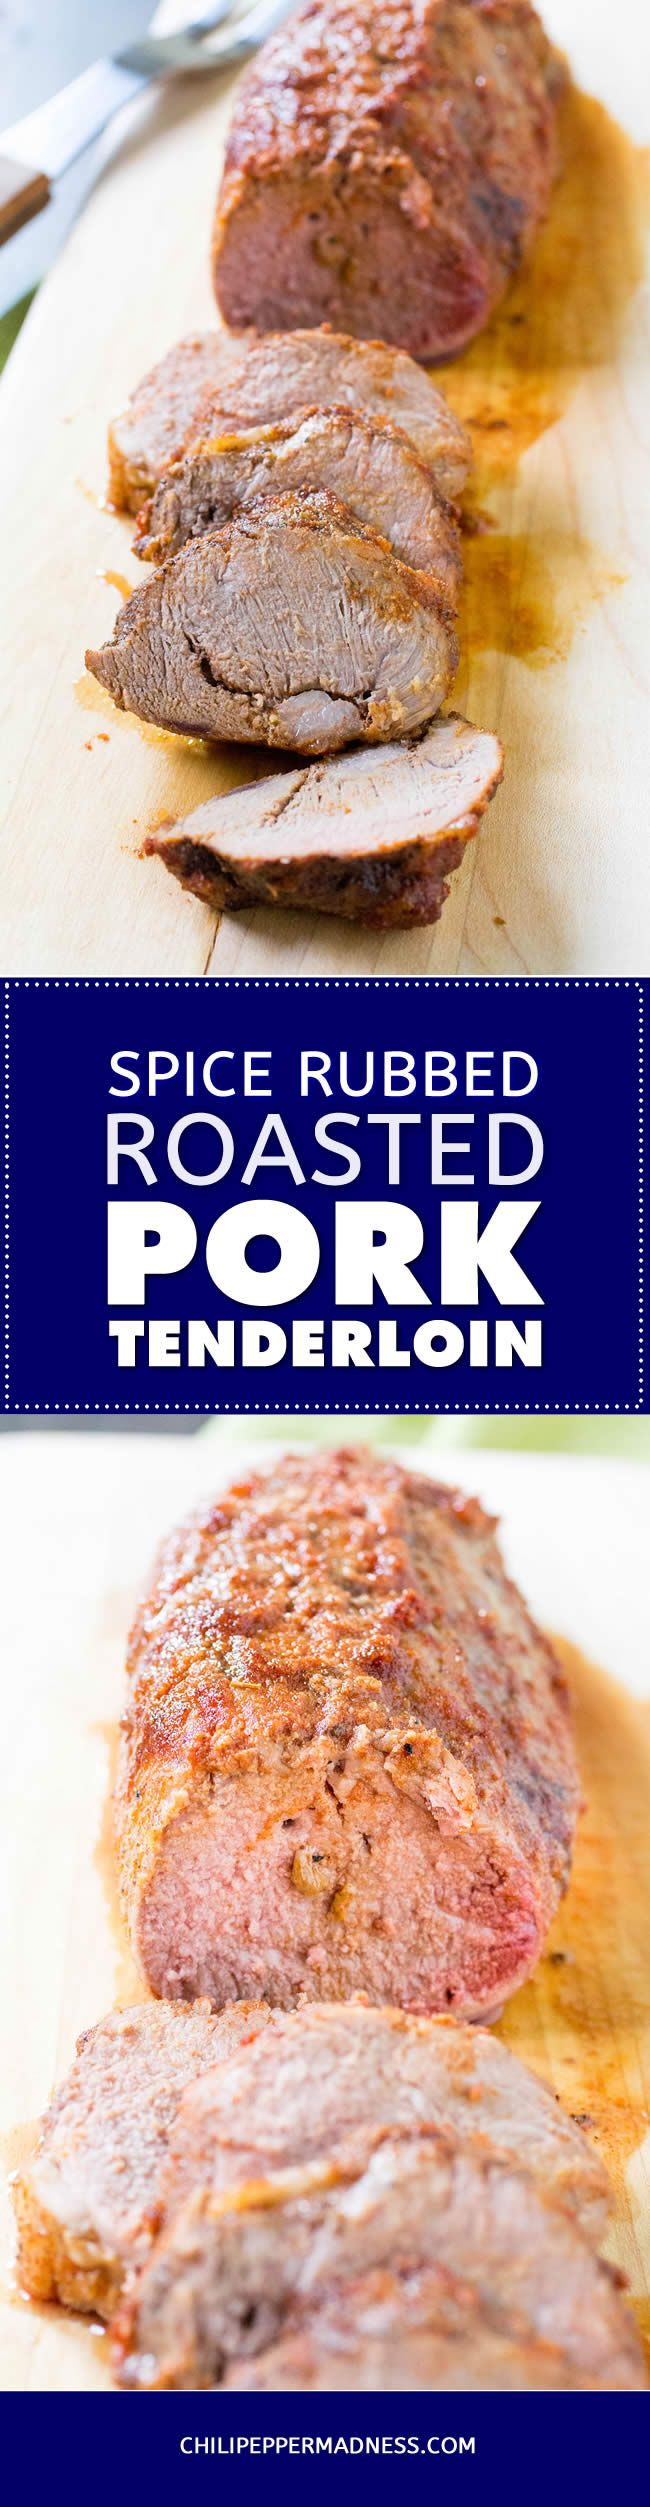 546 best chili pepper madness spicy food recipes images on spice rubbed roasted pork tenderloin spicy food recipessweets recipespork recipesdinner forumfinder Images